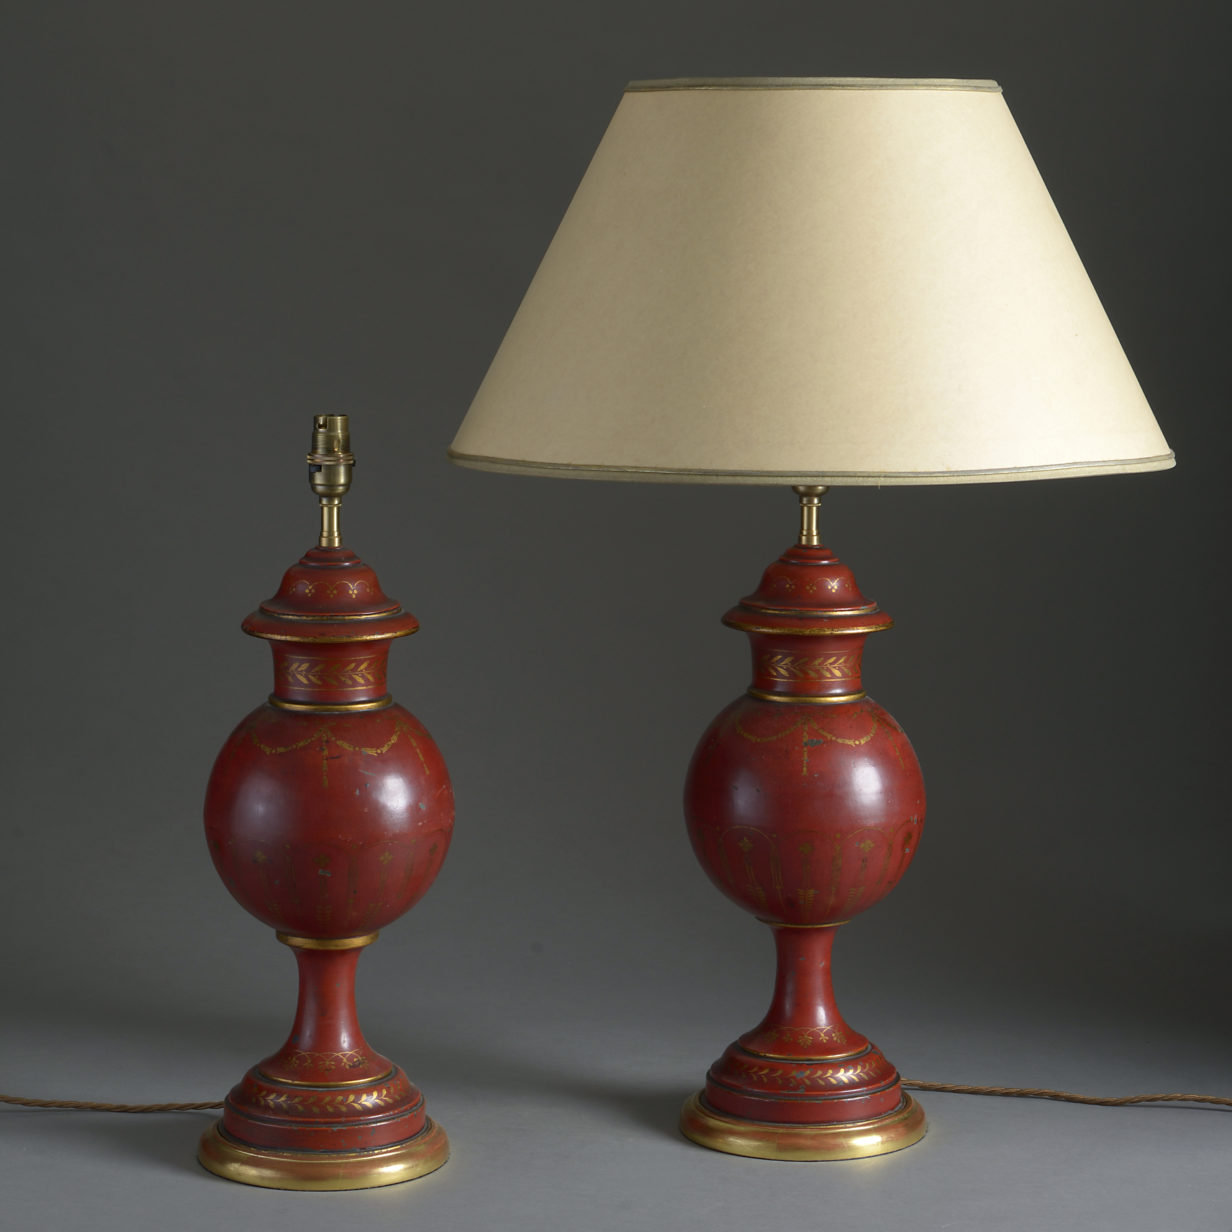 Pair of Red Tole Lamps